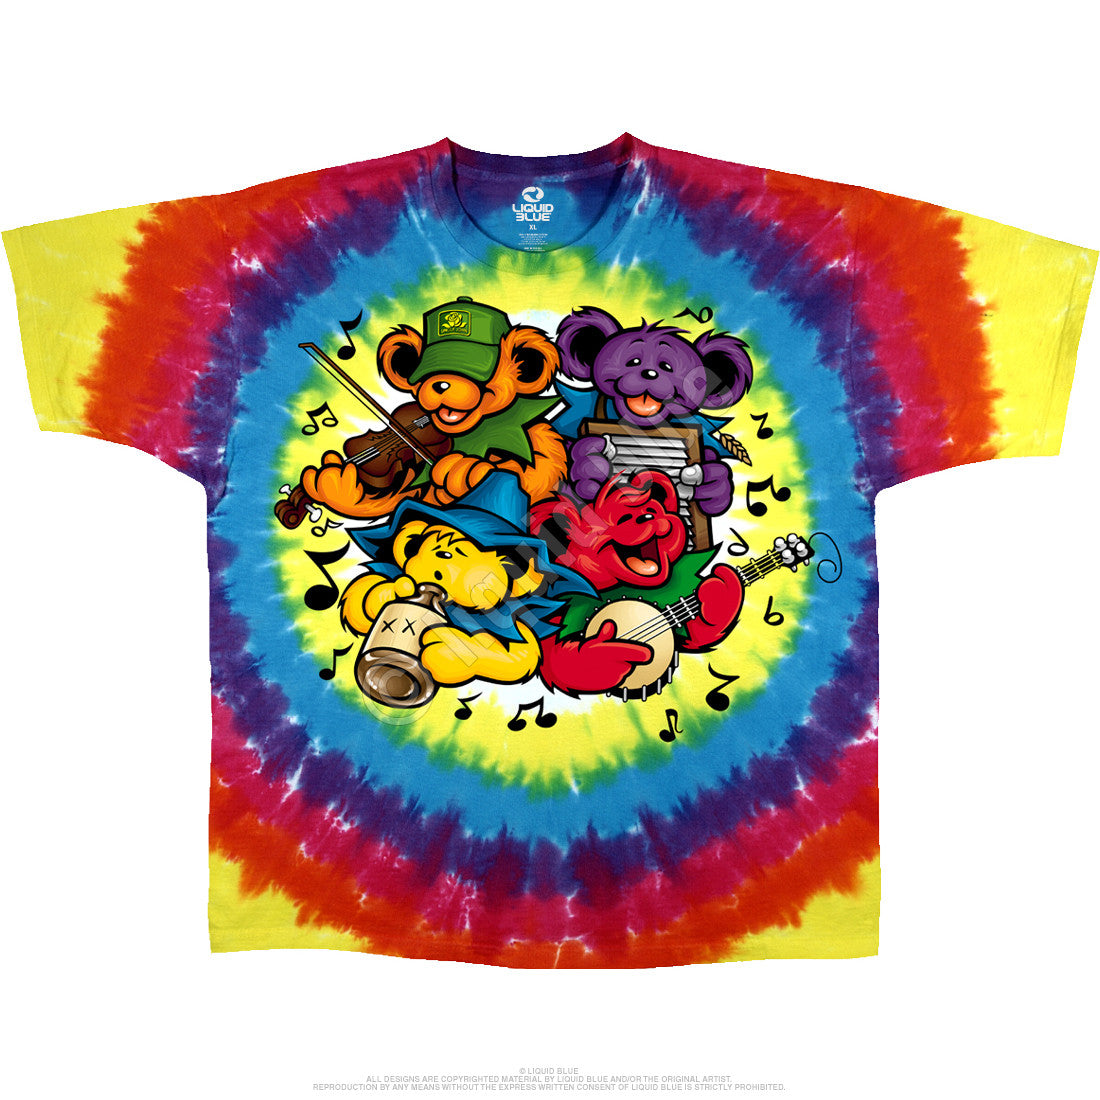 Grateful Dead Bear Jamboree Tie Dye Shirt